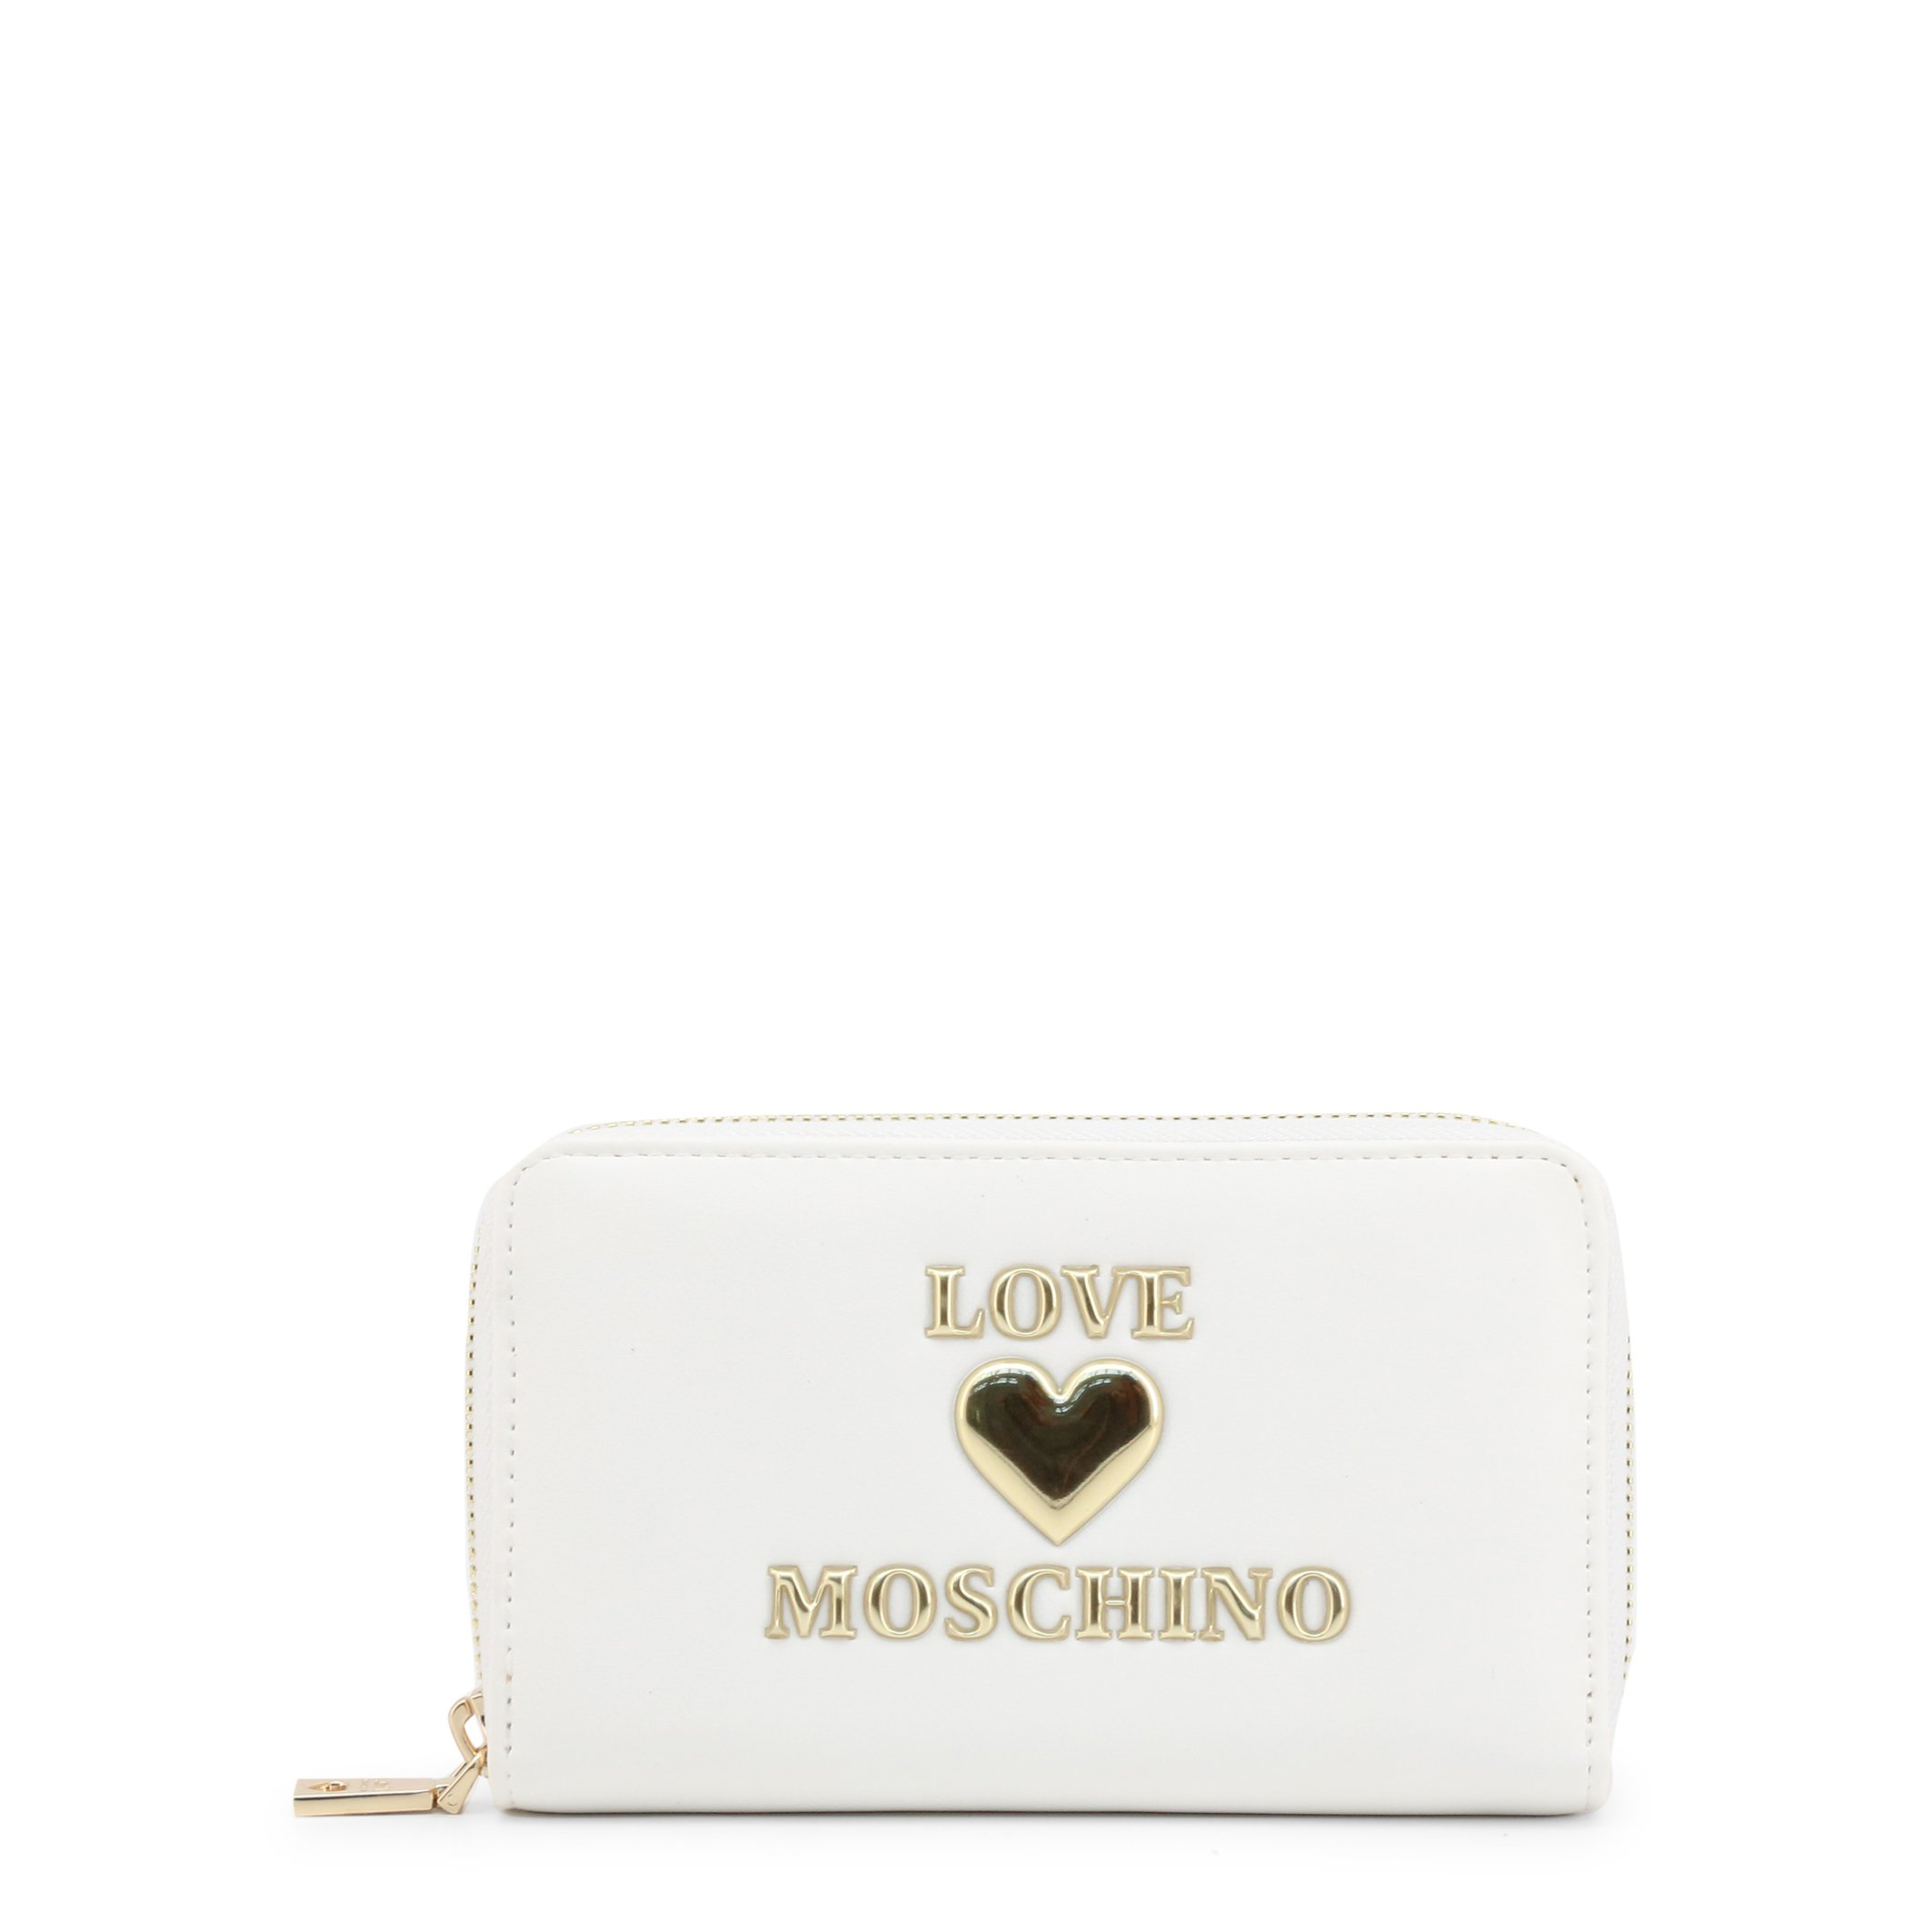 Love Moschino Women's Wallet Various Colours JC5622PP1CLF0 - white NOSIZE